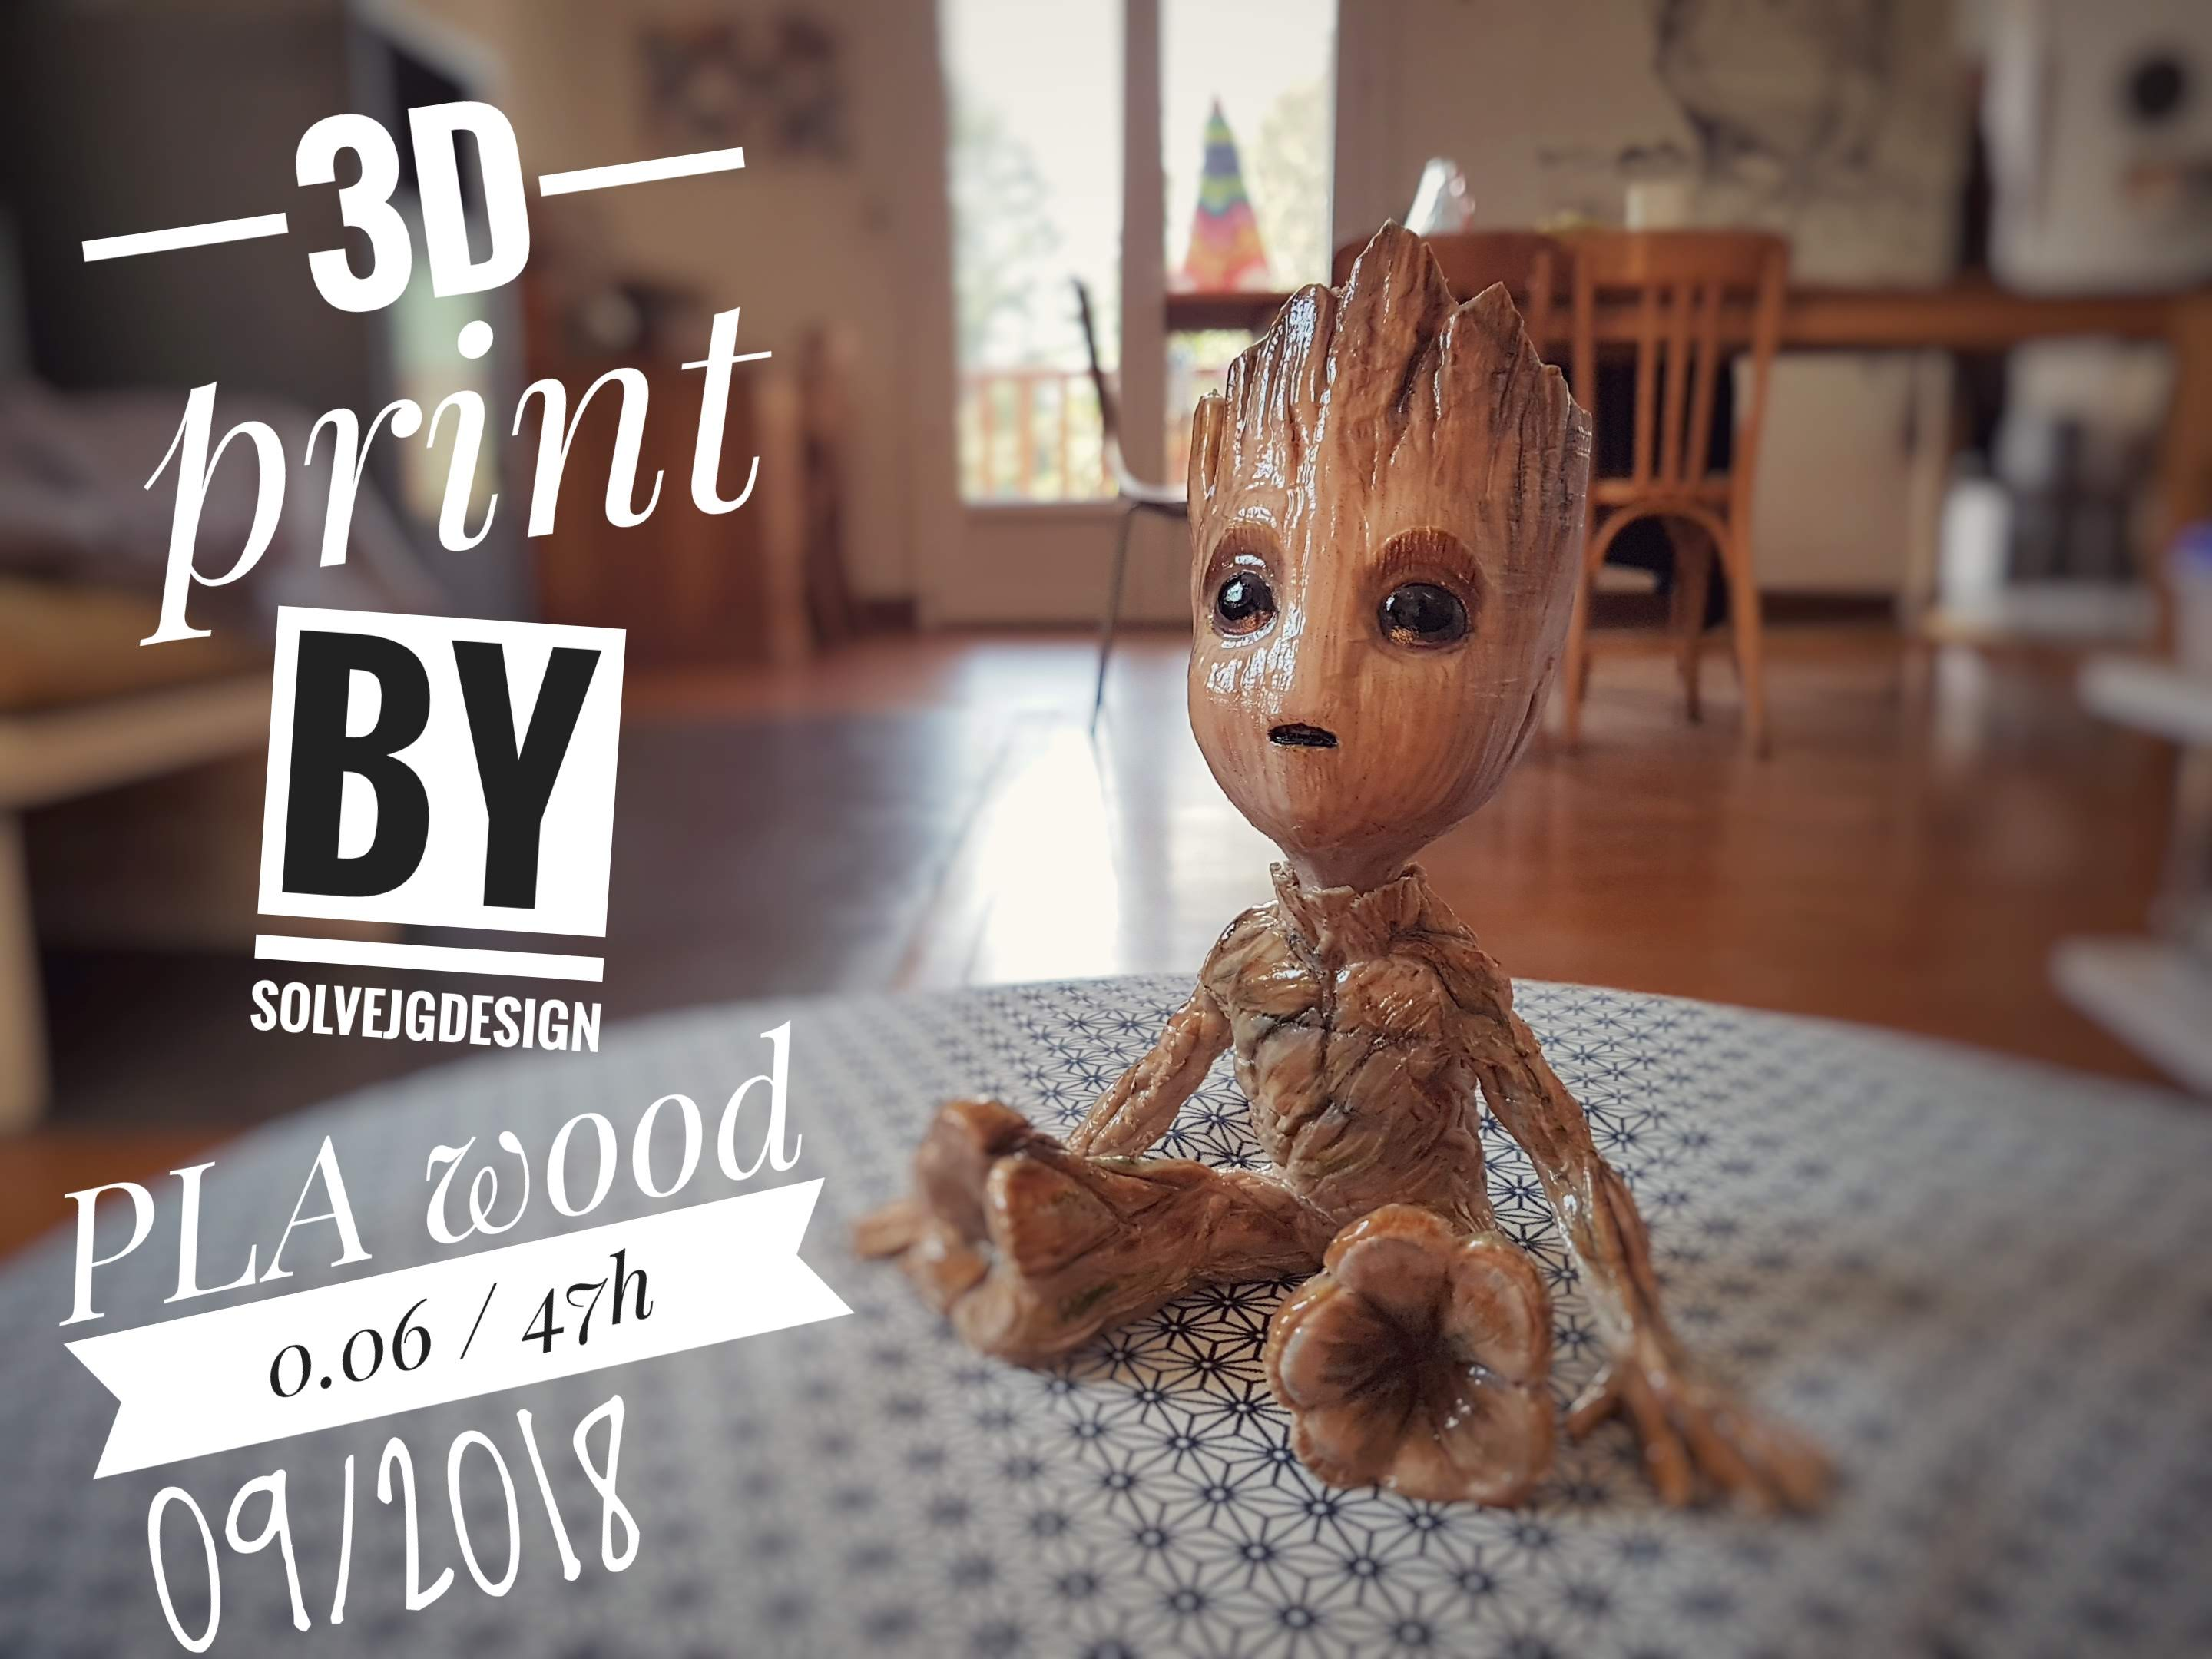 Impression 3D - Groot - solvejgdesign